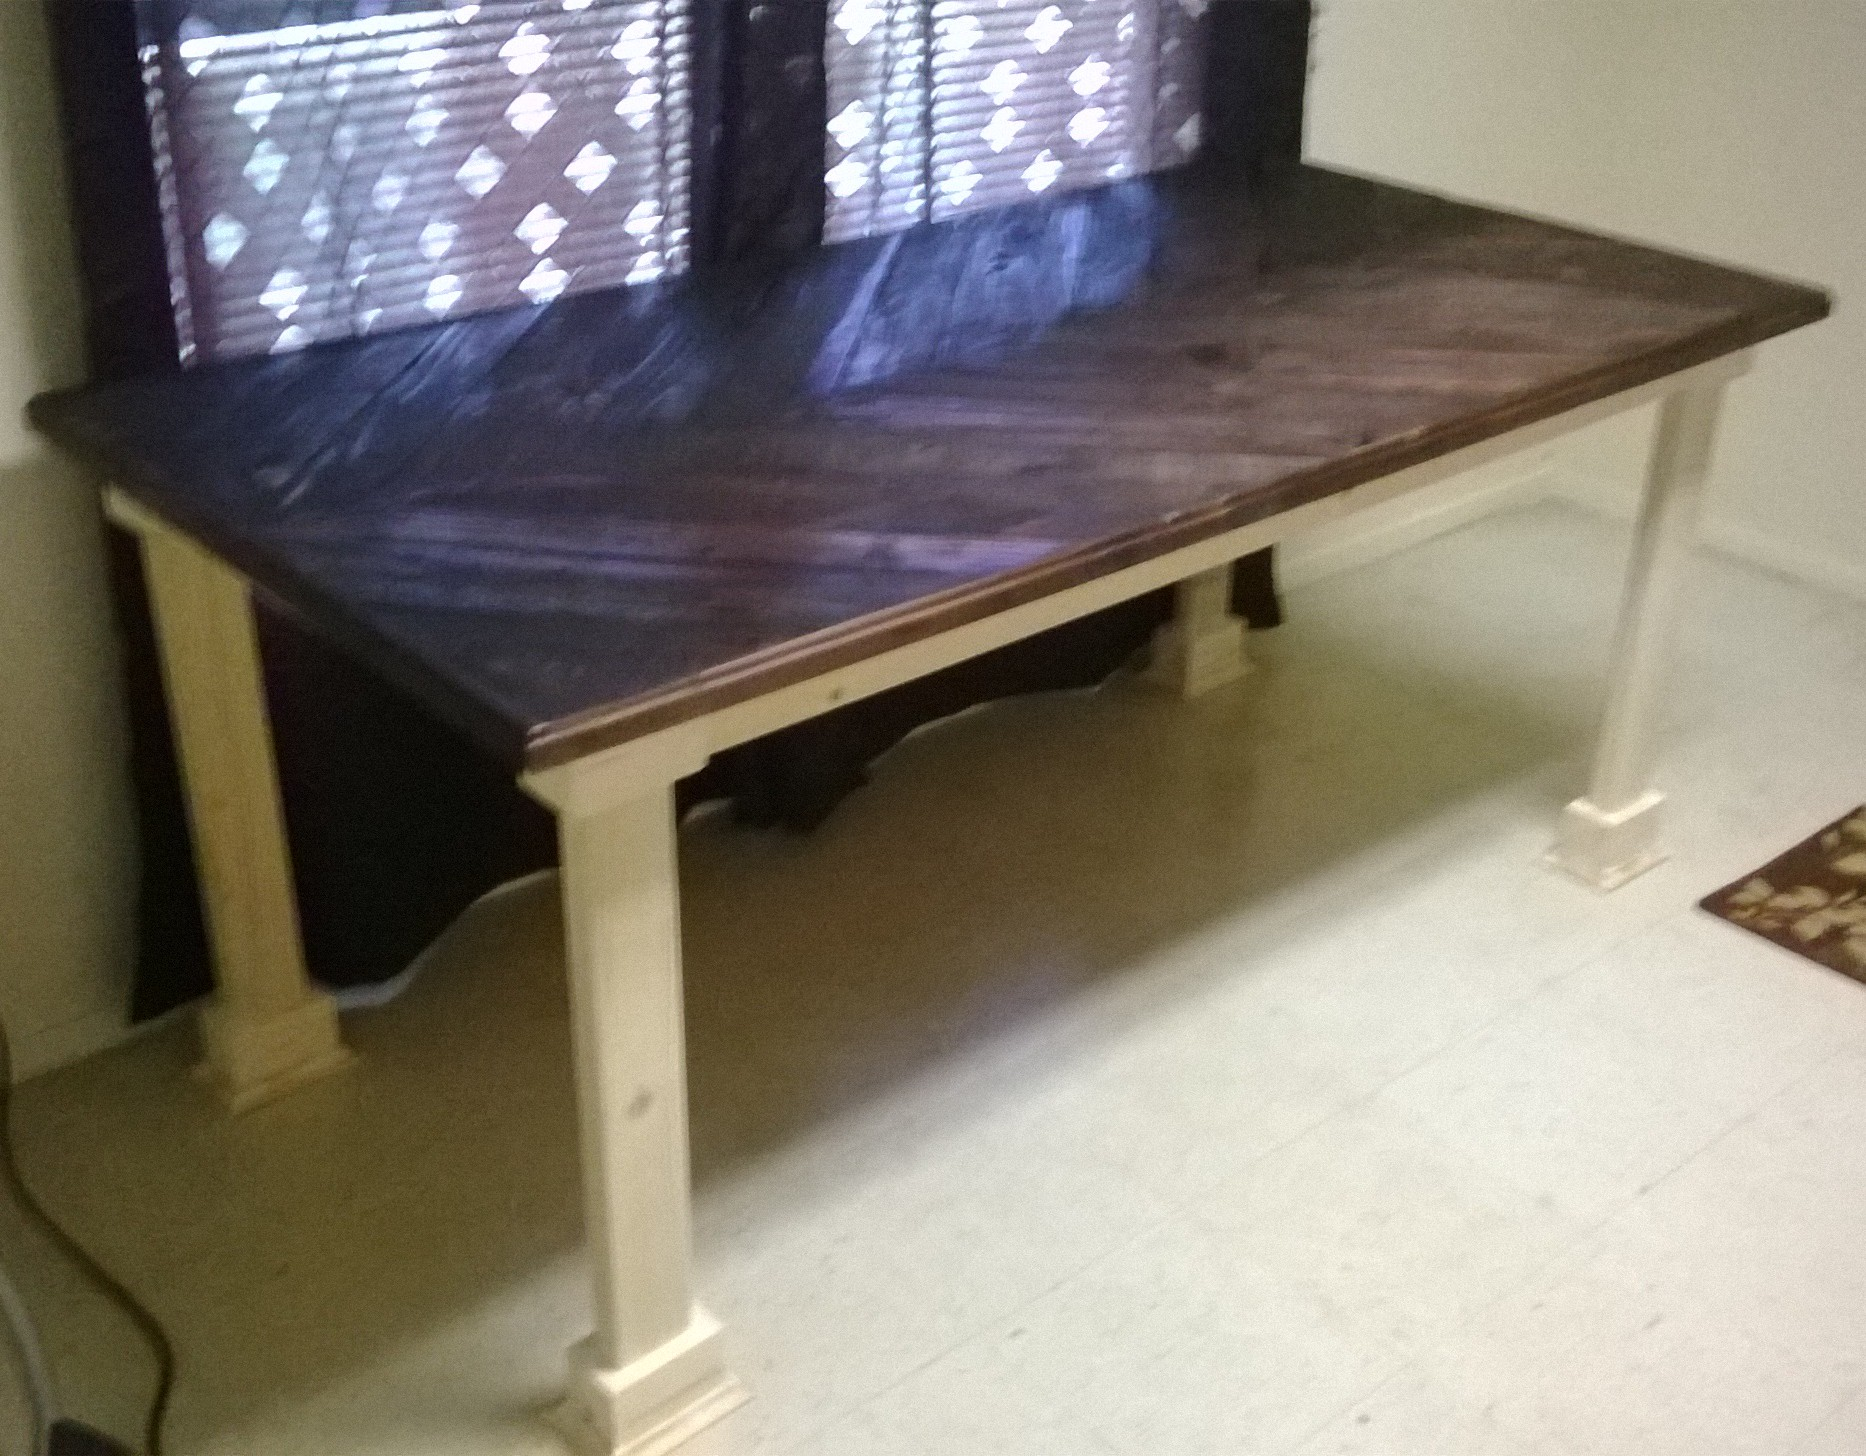 Dustycatswoodshop Reclaimed Wood Farm Table. WP_20150401_005